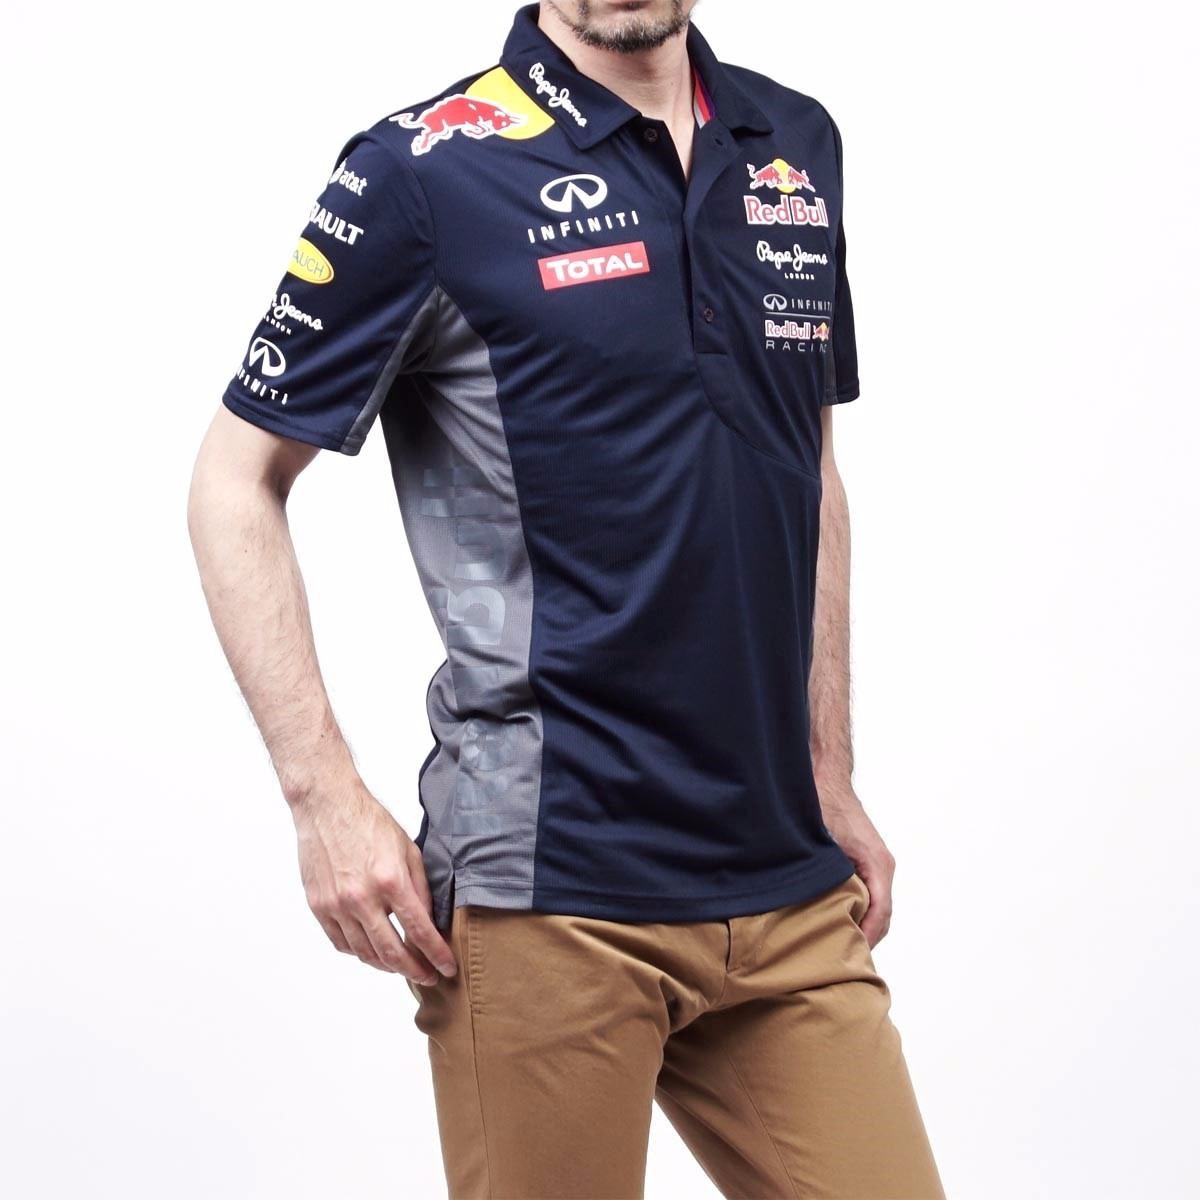 Red Bull Racing F1 Camisa Polo Oficial Infiniti Red Bull 53567260084